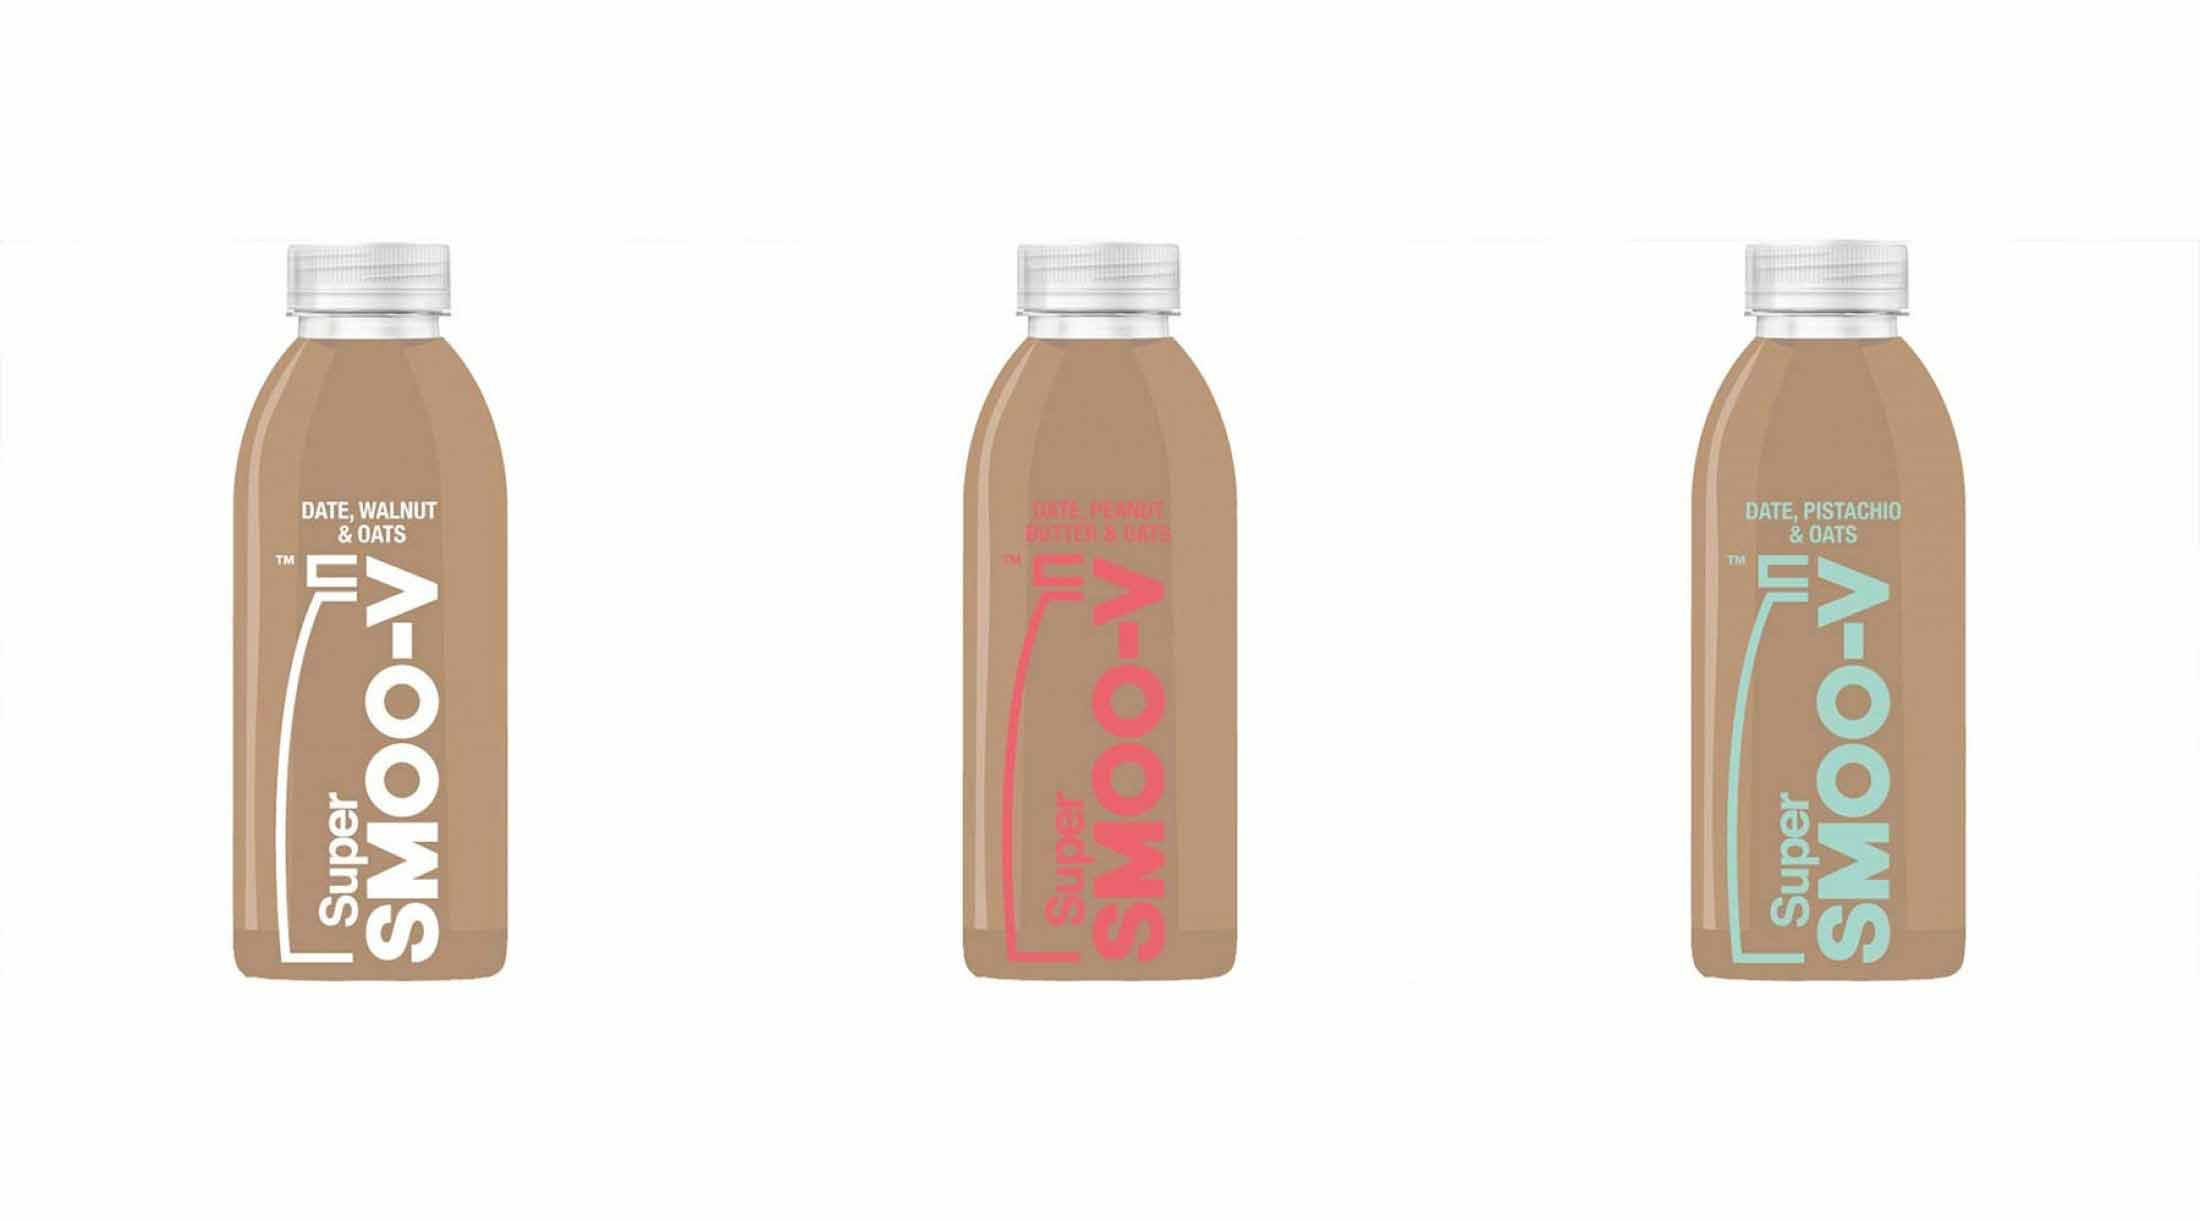 Heathy Smoothie Brand design